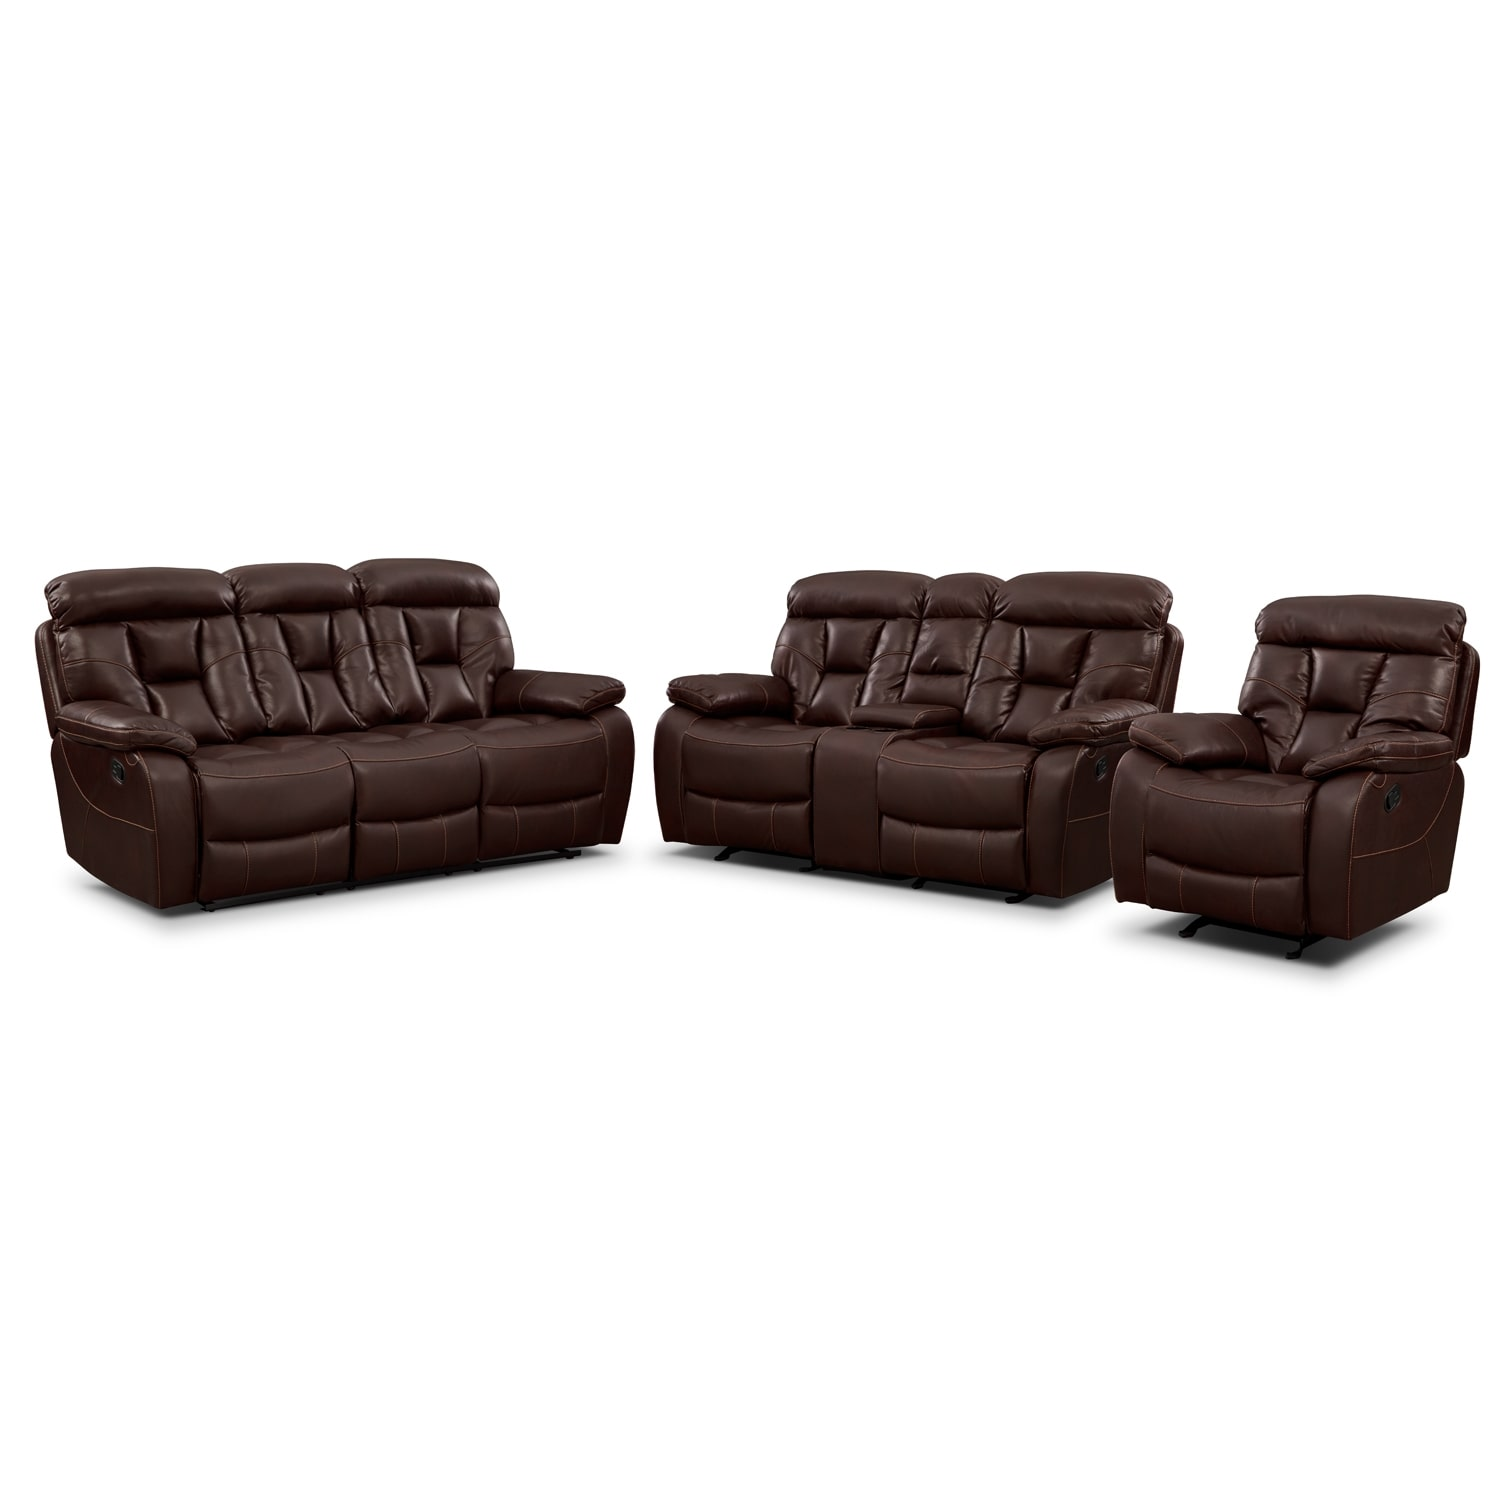 Dakota Reclining Sofa Glider Loveseat And Glider Recliner Set Java Value City Furniture